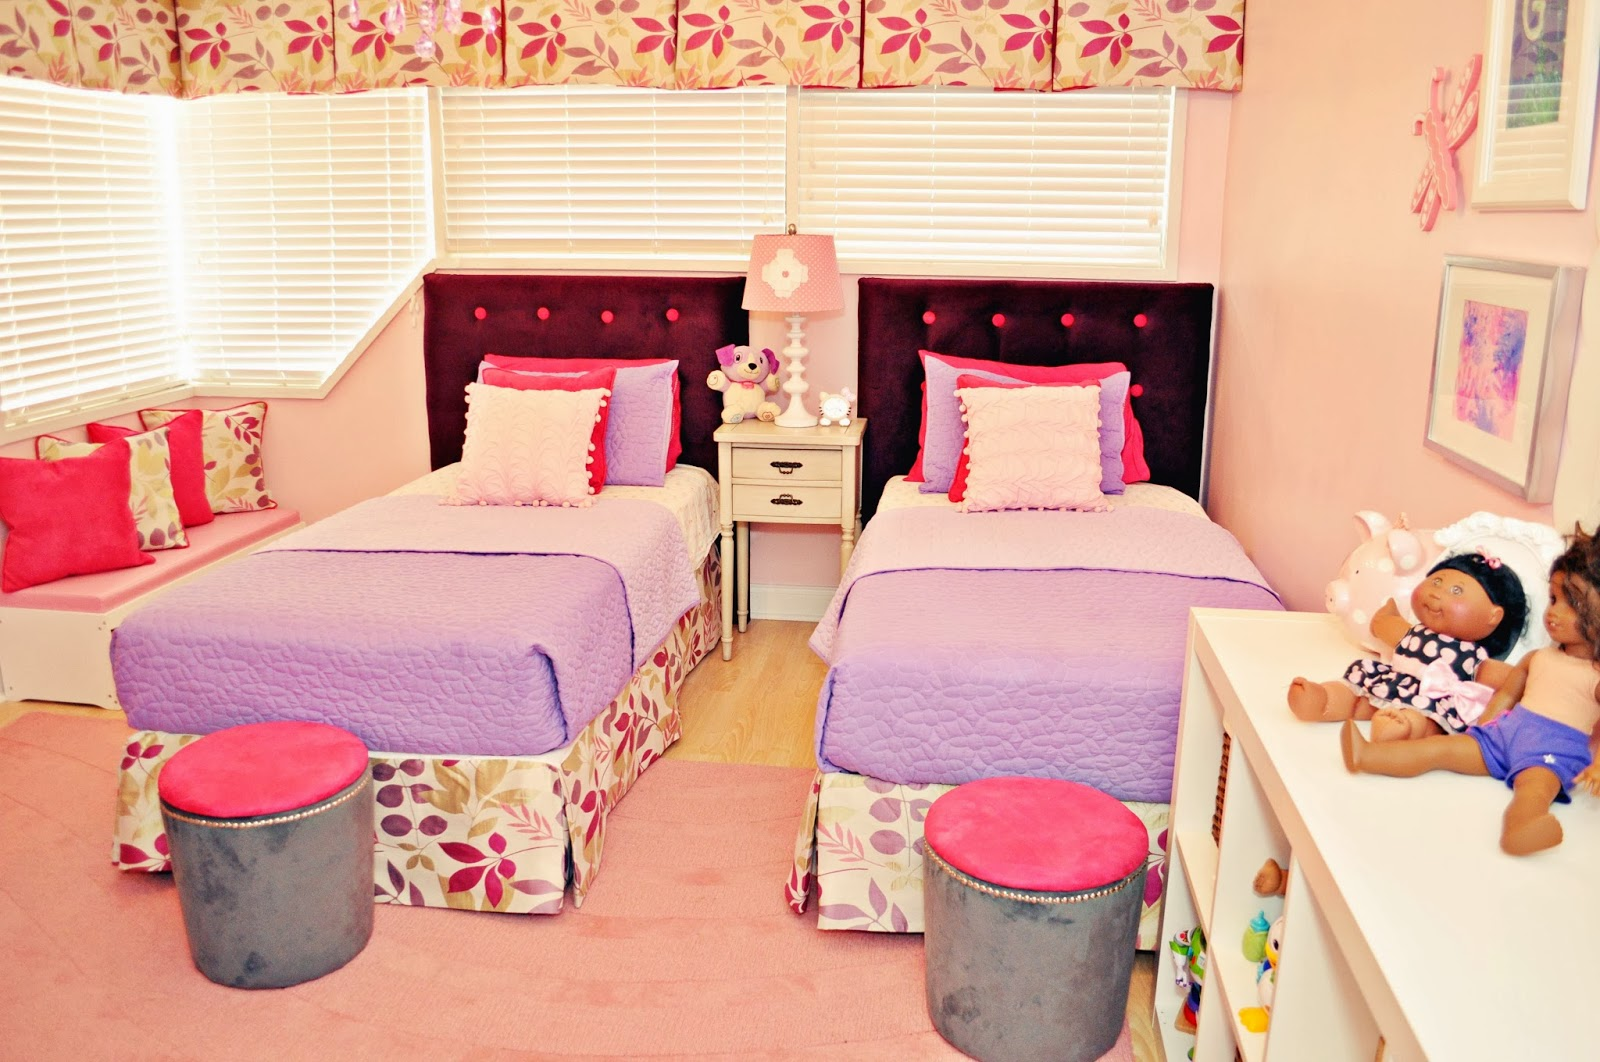 Live laugh decorate pink meets purple in our kids room reveal for 3 kids beds one room